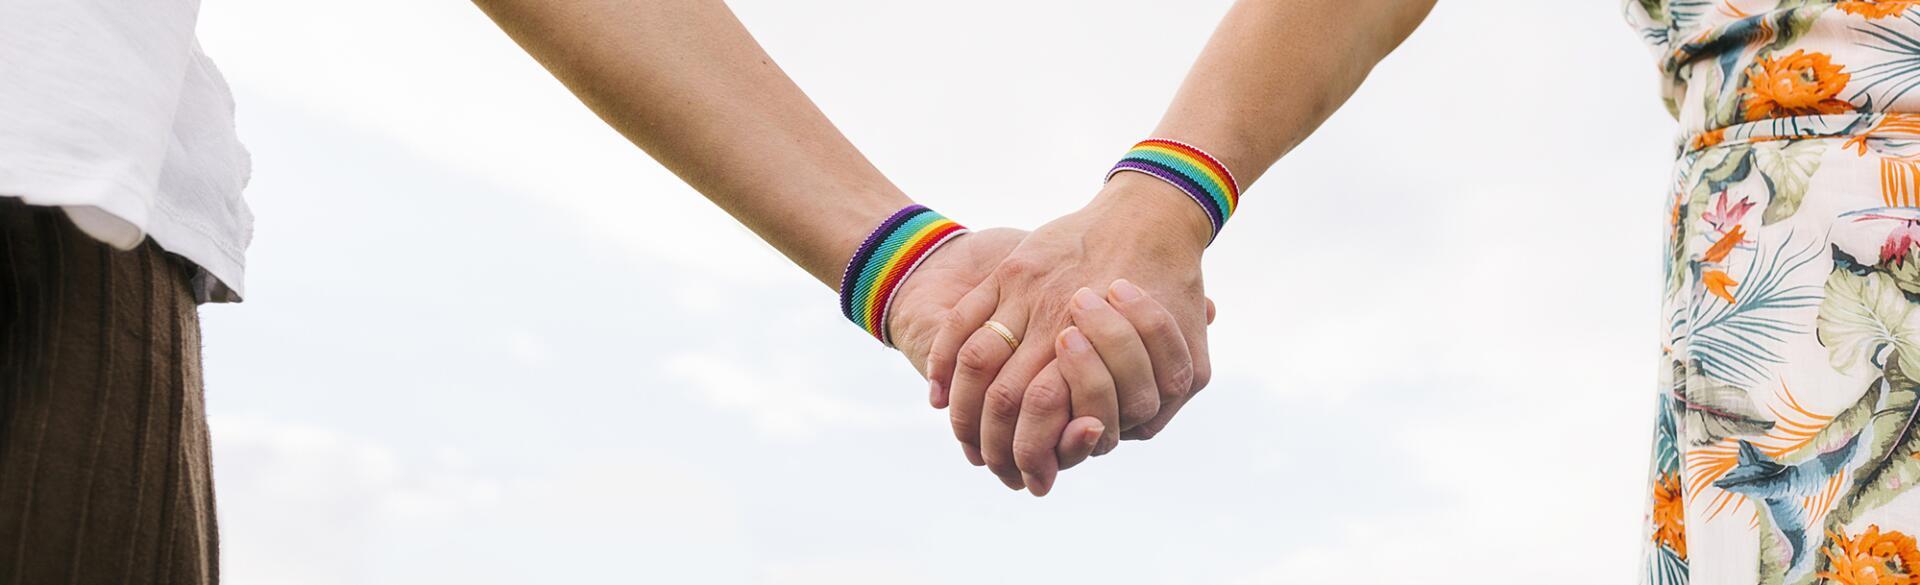 Two women holding hands each wearing a rainbow bracelet and one with a wedding band on